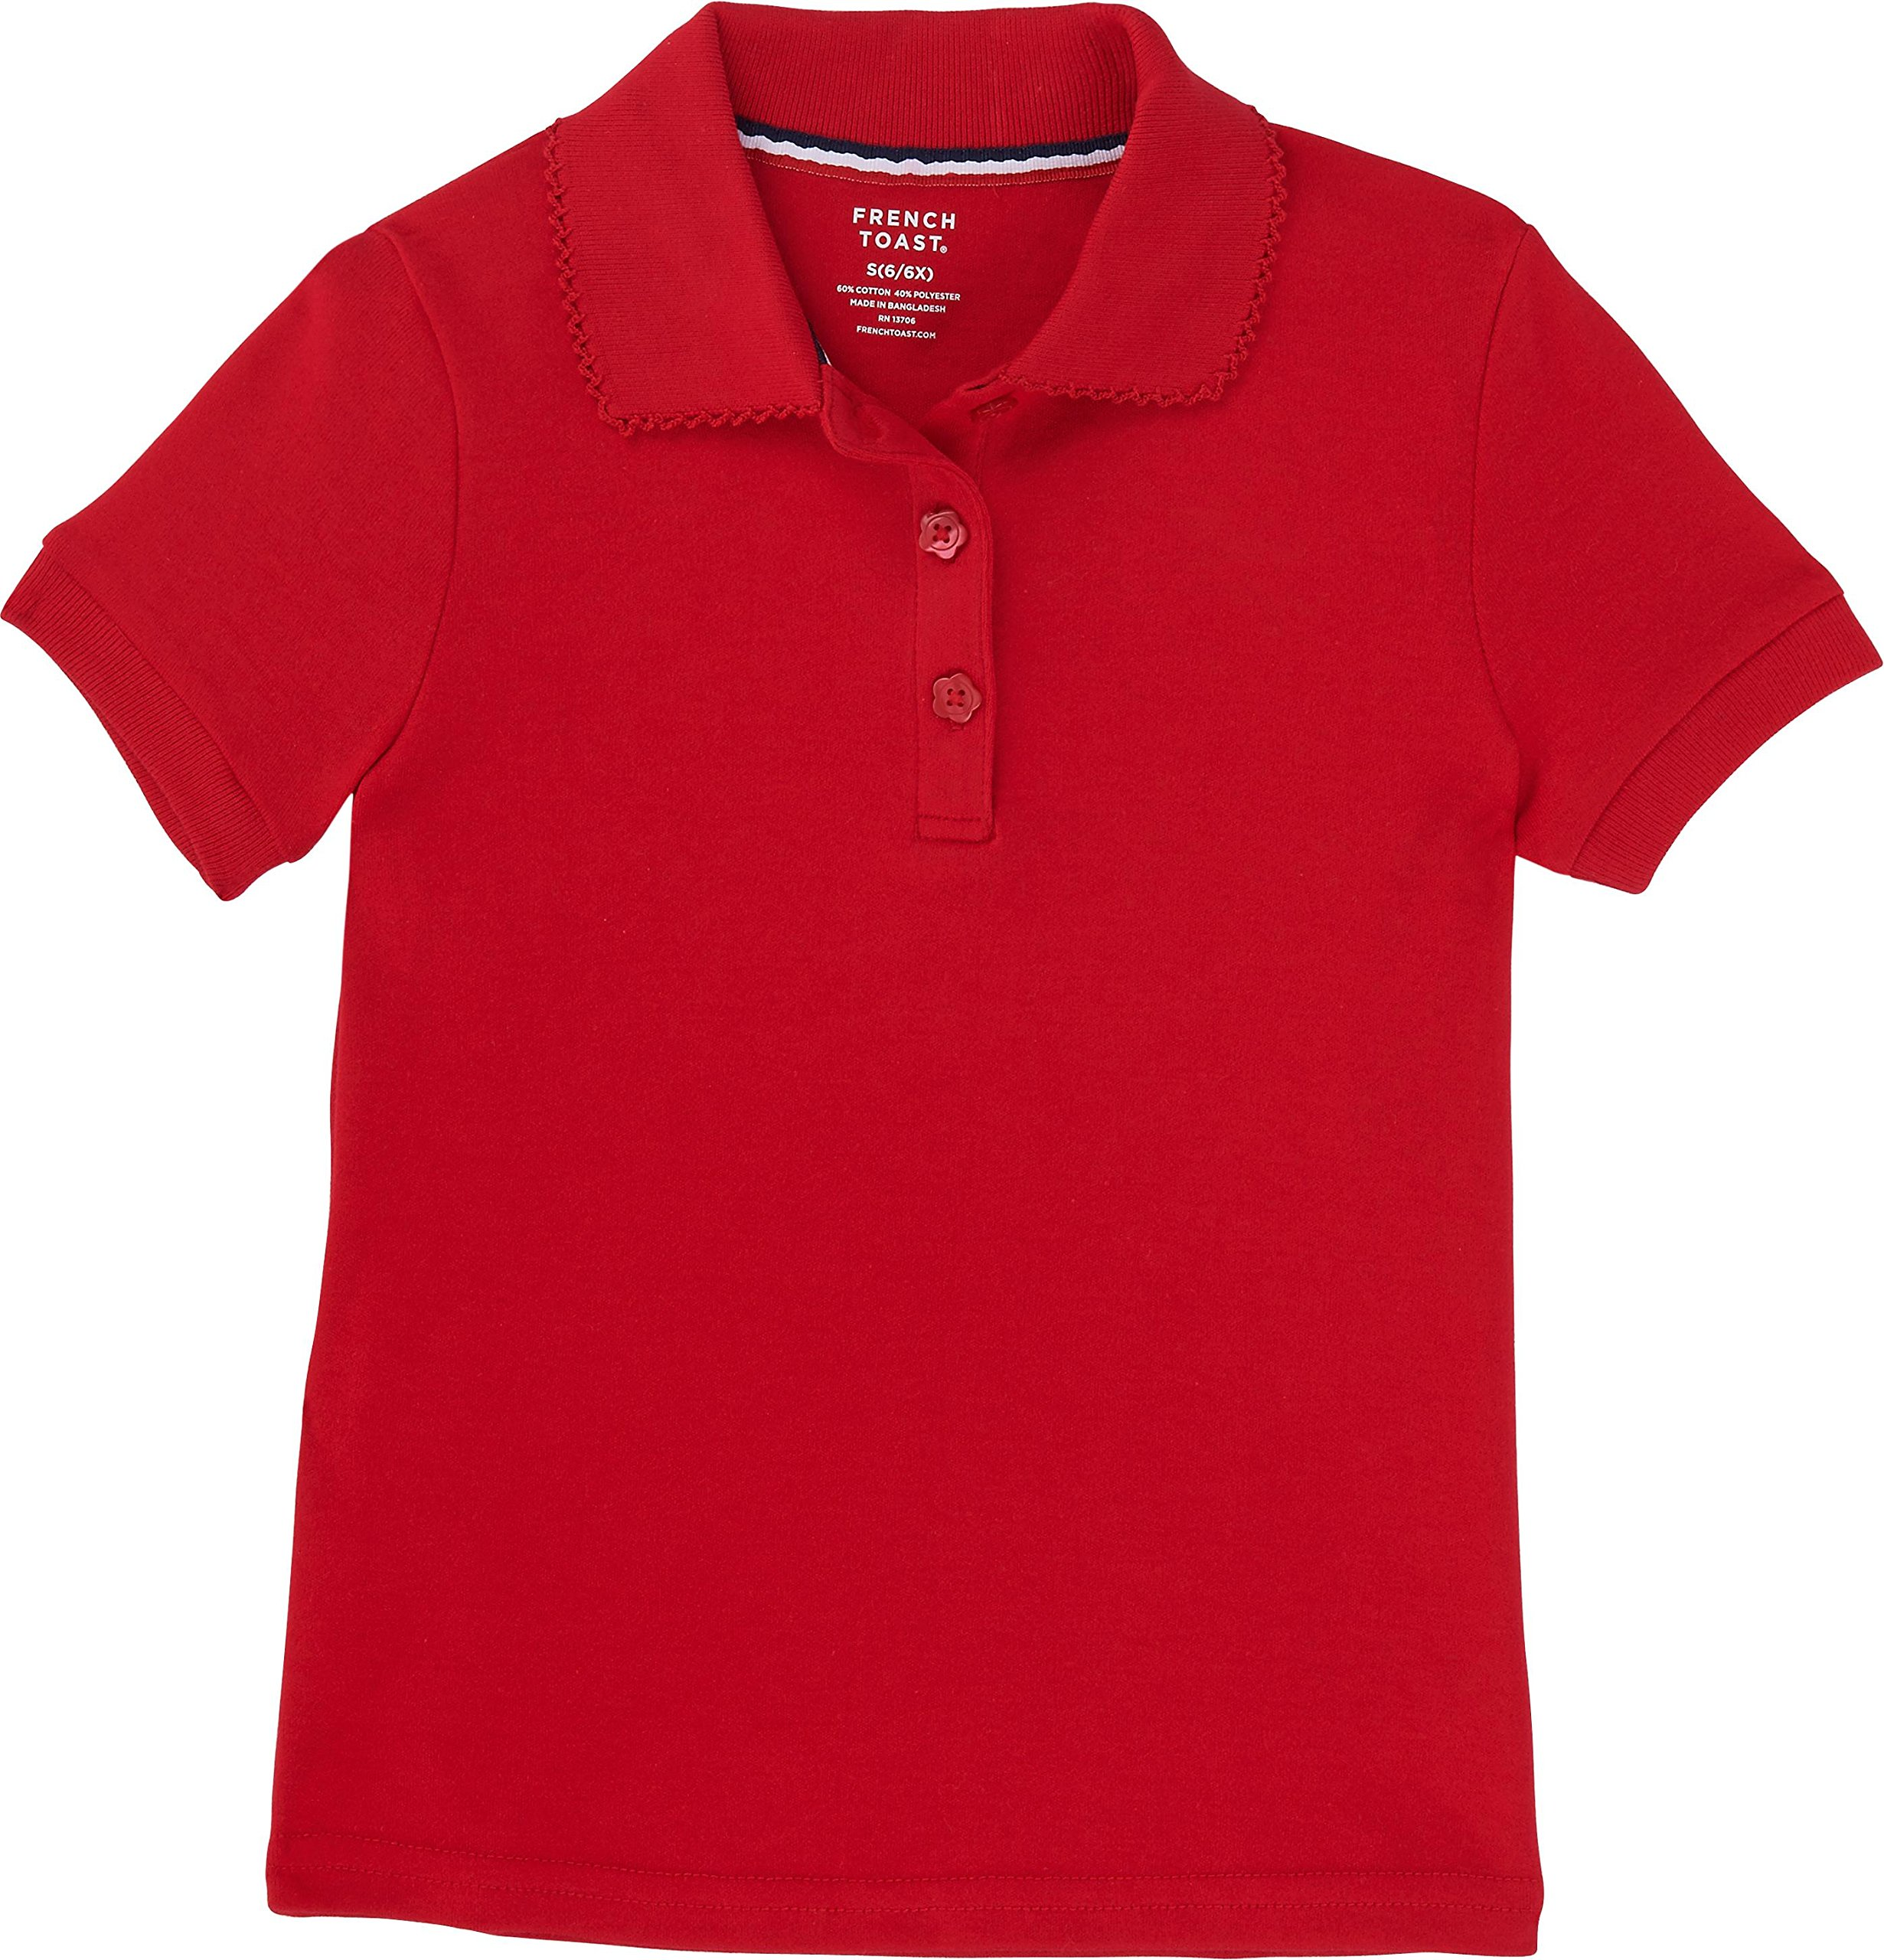 French Toast School Uniform Girls Short Sleeve Interlock Polo w/Picot Collar, Red, Medium Plus (10/12P) by French Toast